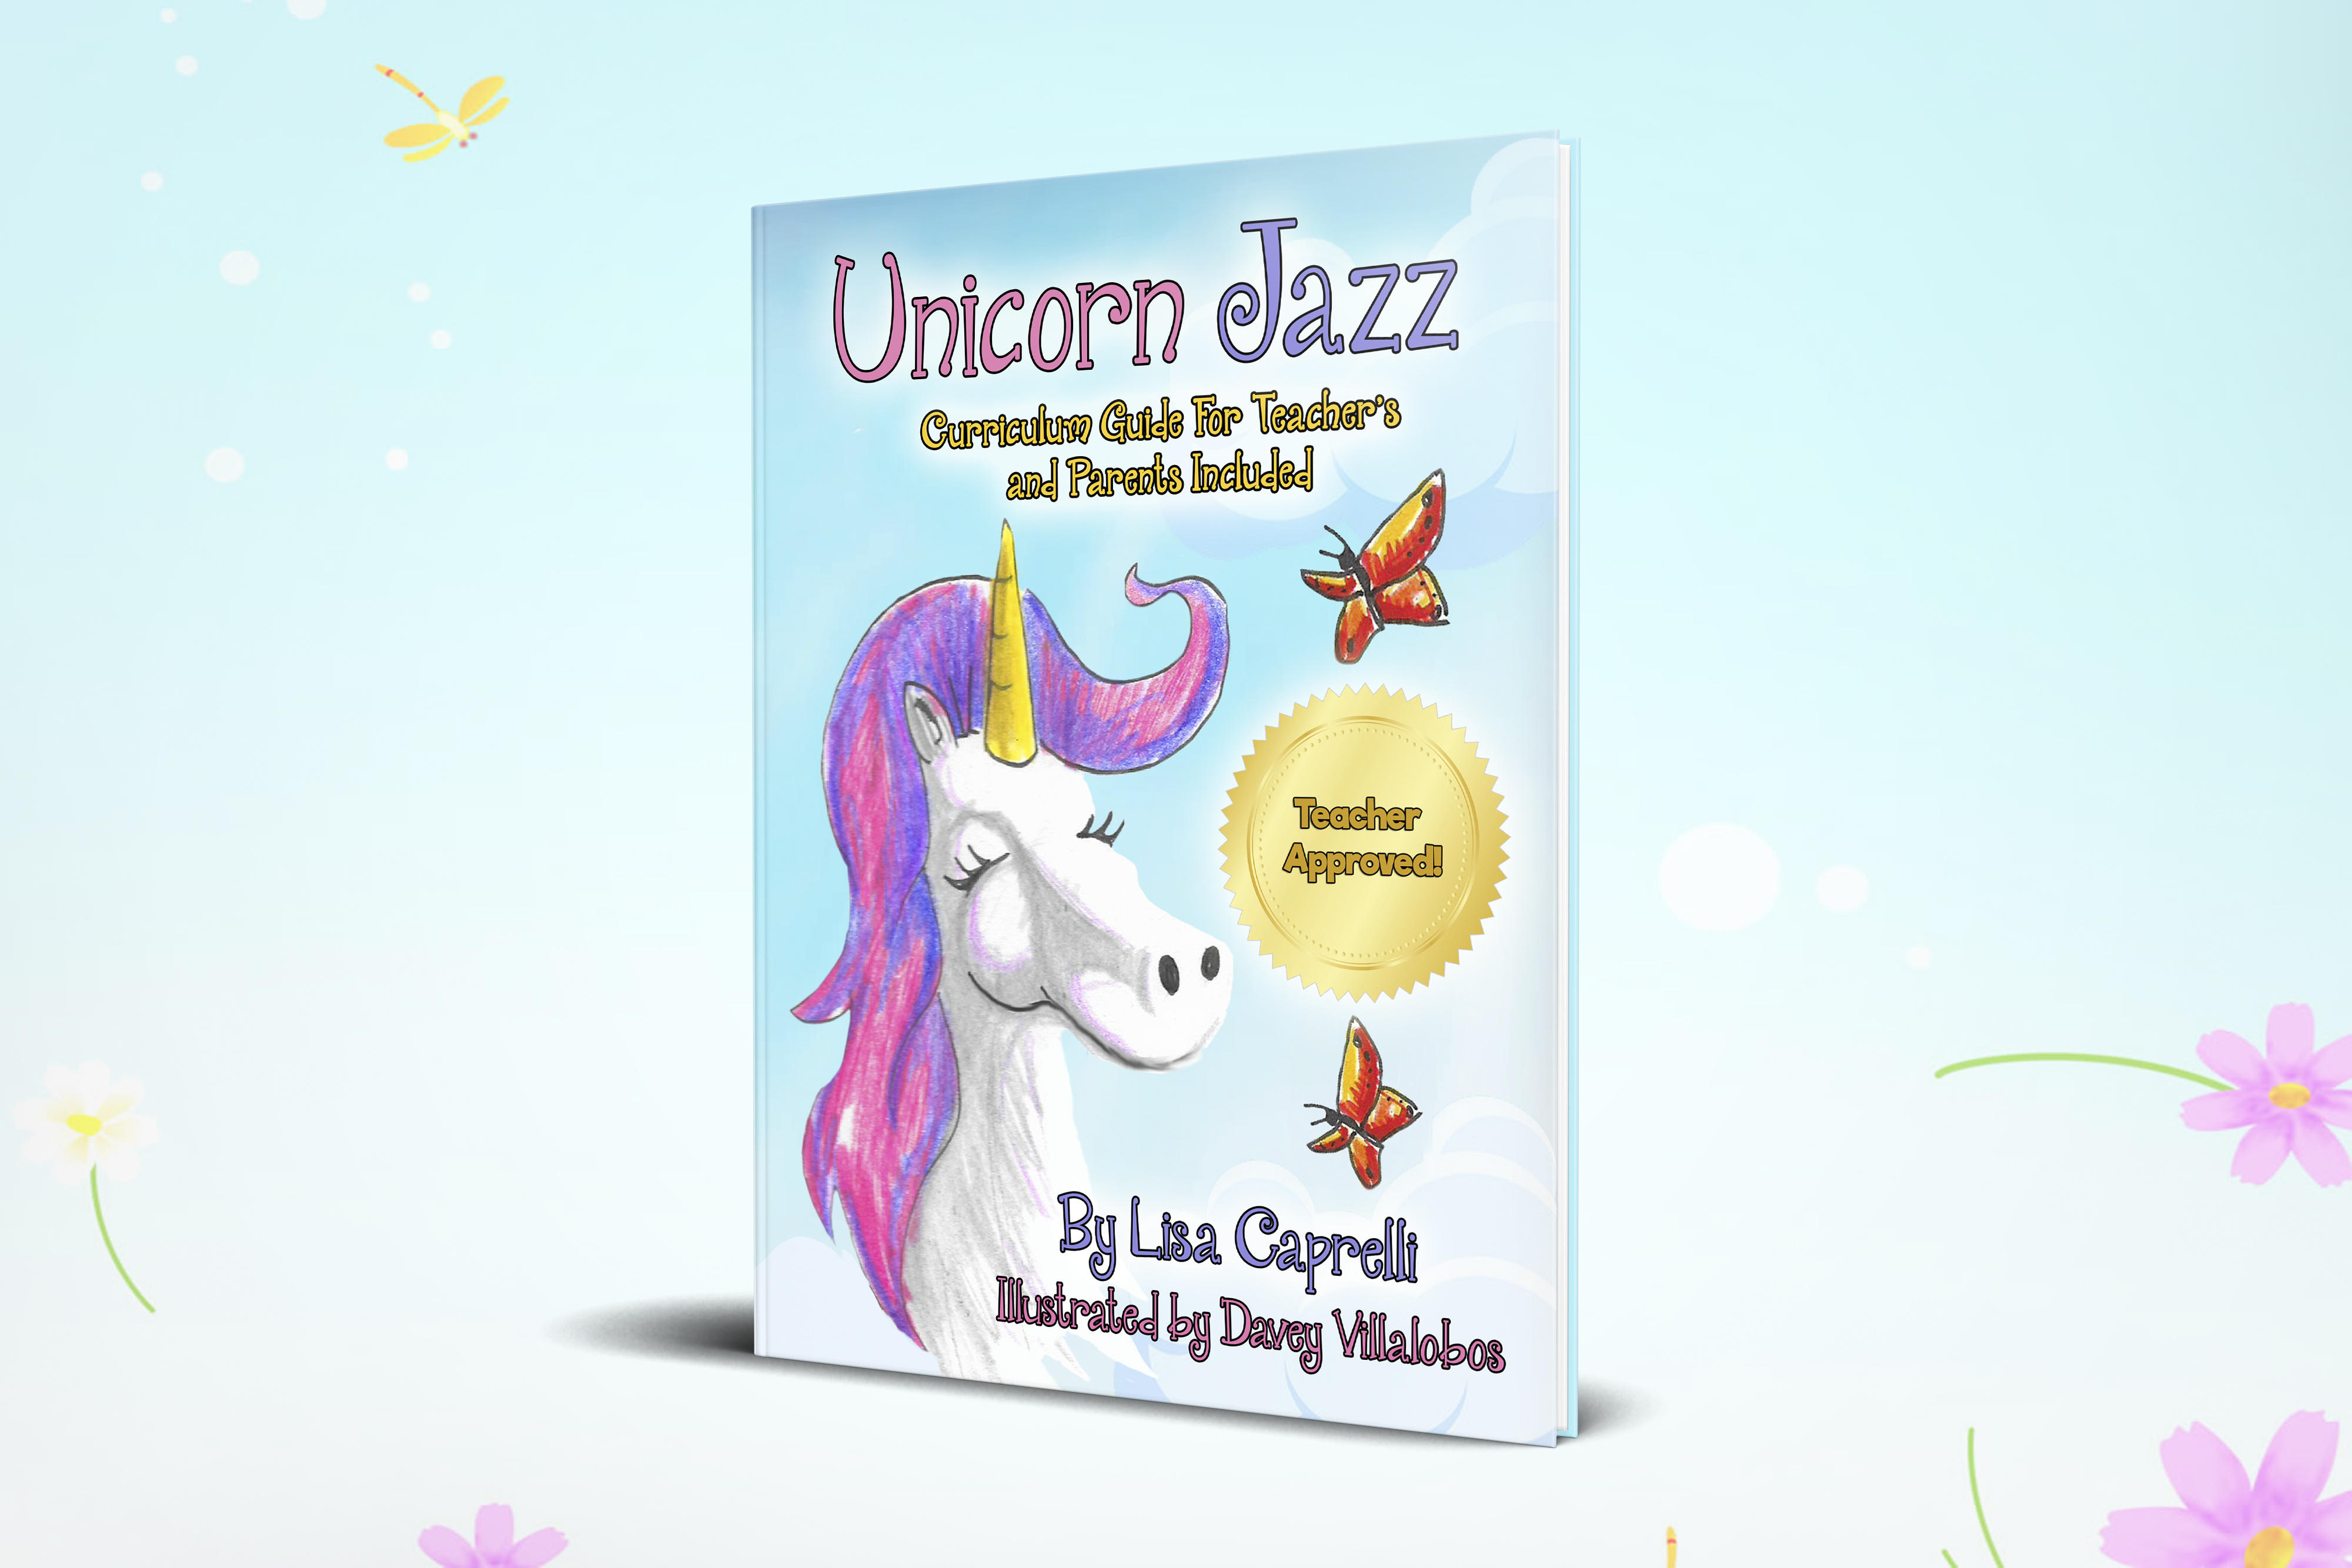 UNICORN JAZZ 3D